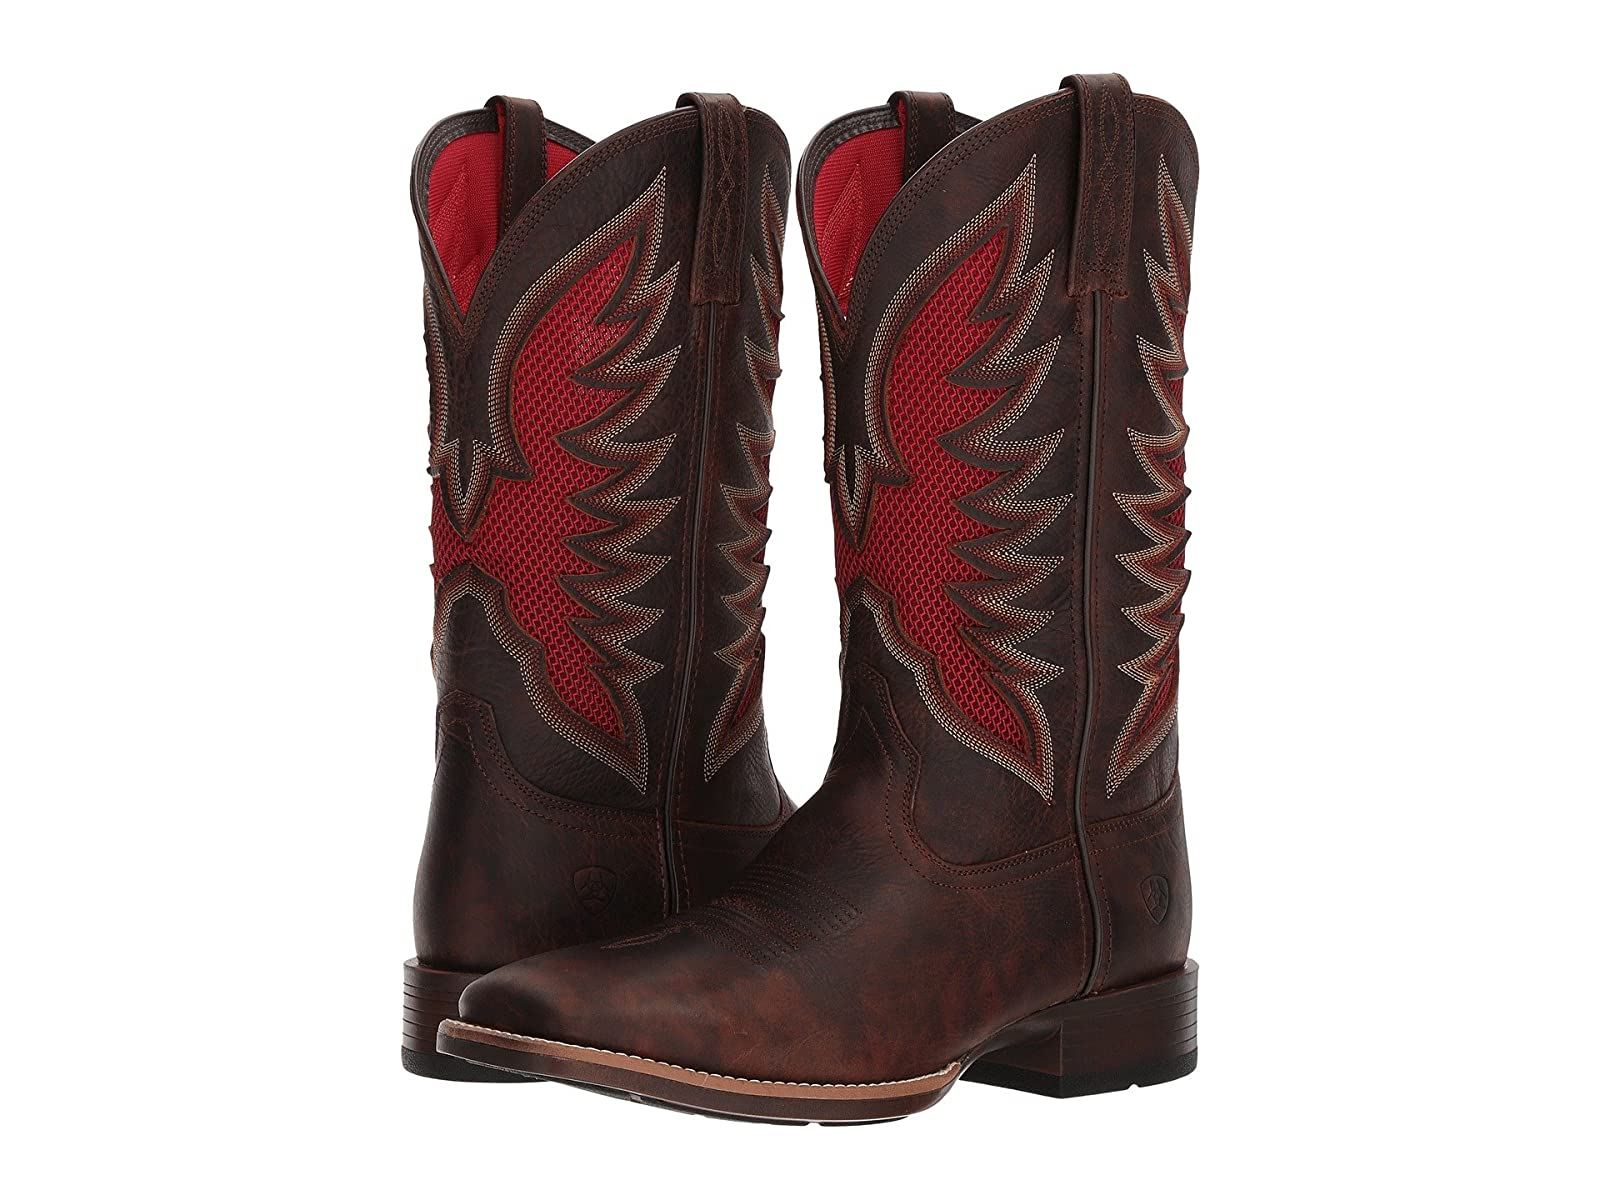 Ariat Venttek UltraSelling fashionable and eye-catching shoes